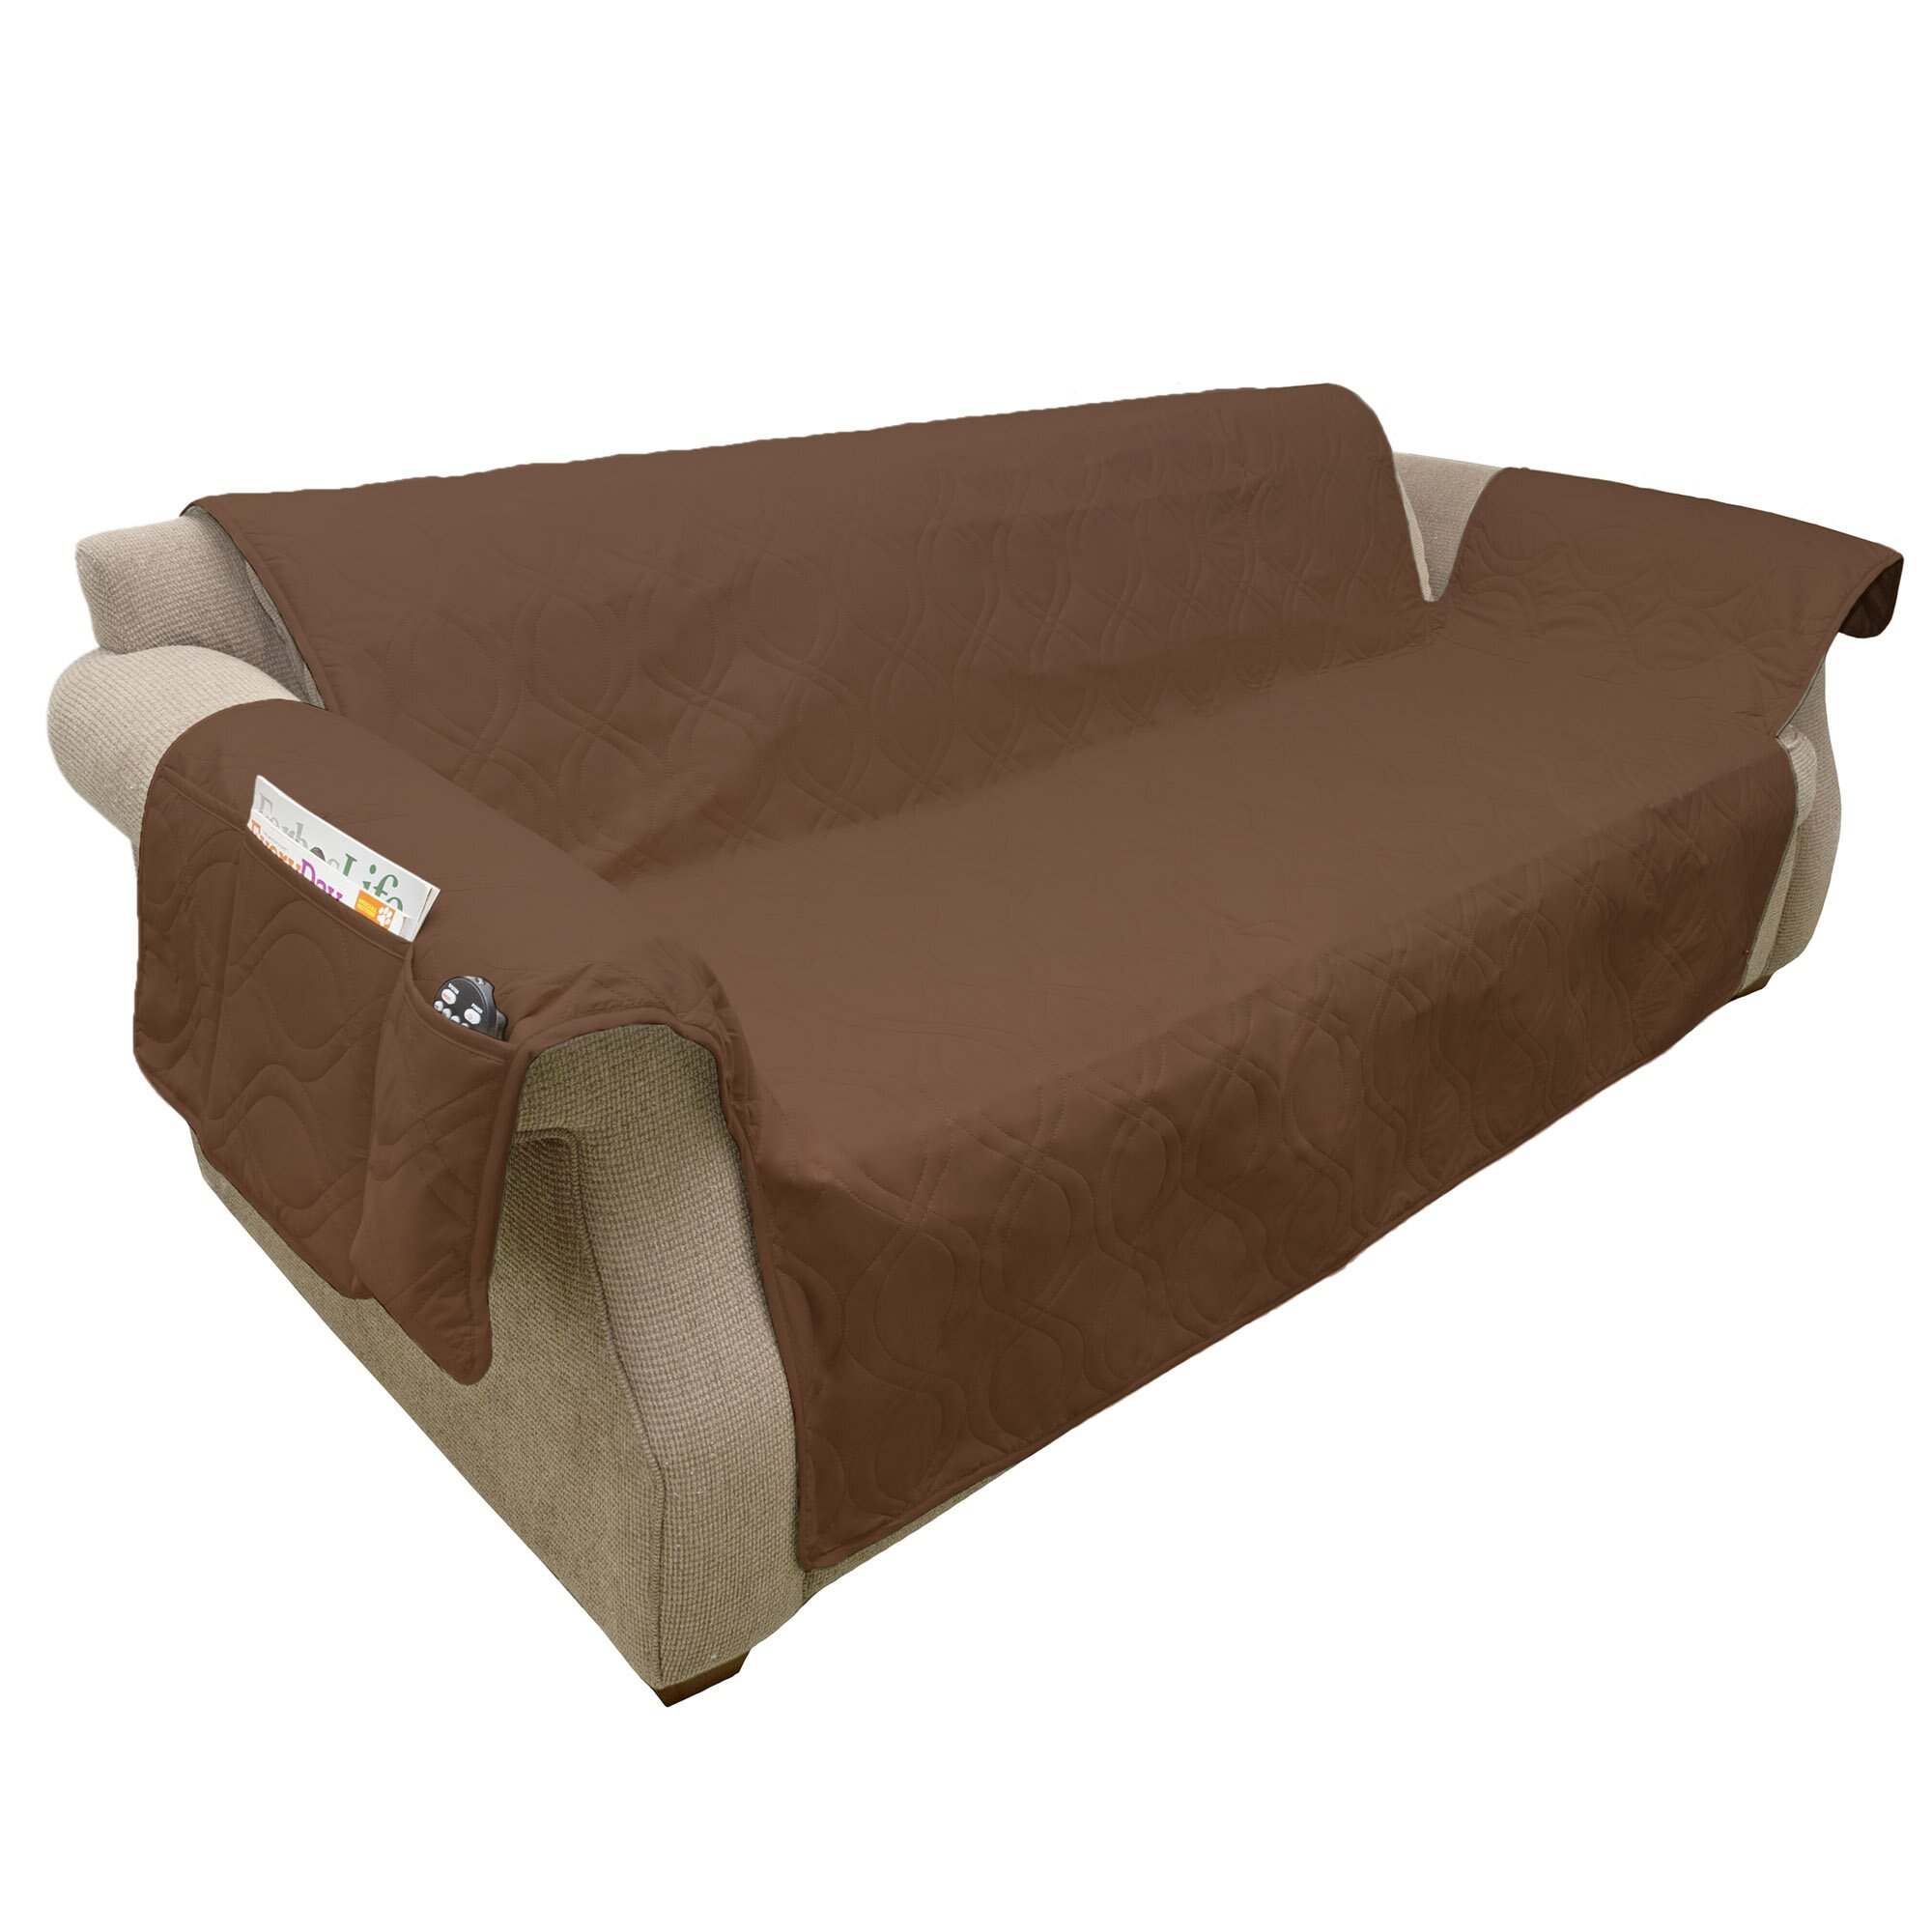 Petmaker Waterproof Quilted Polyester Sofa Slipcover